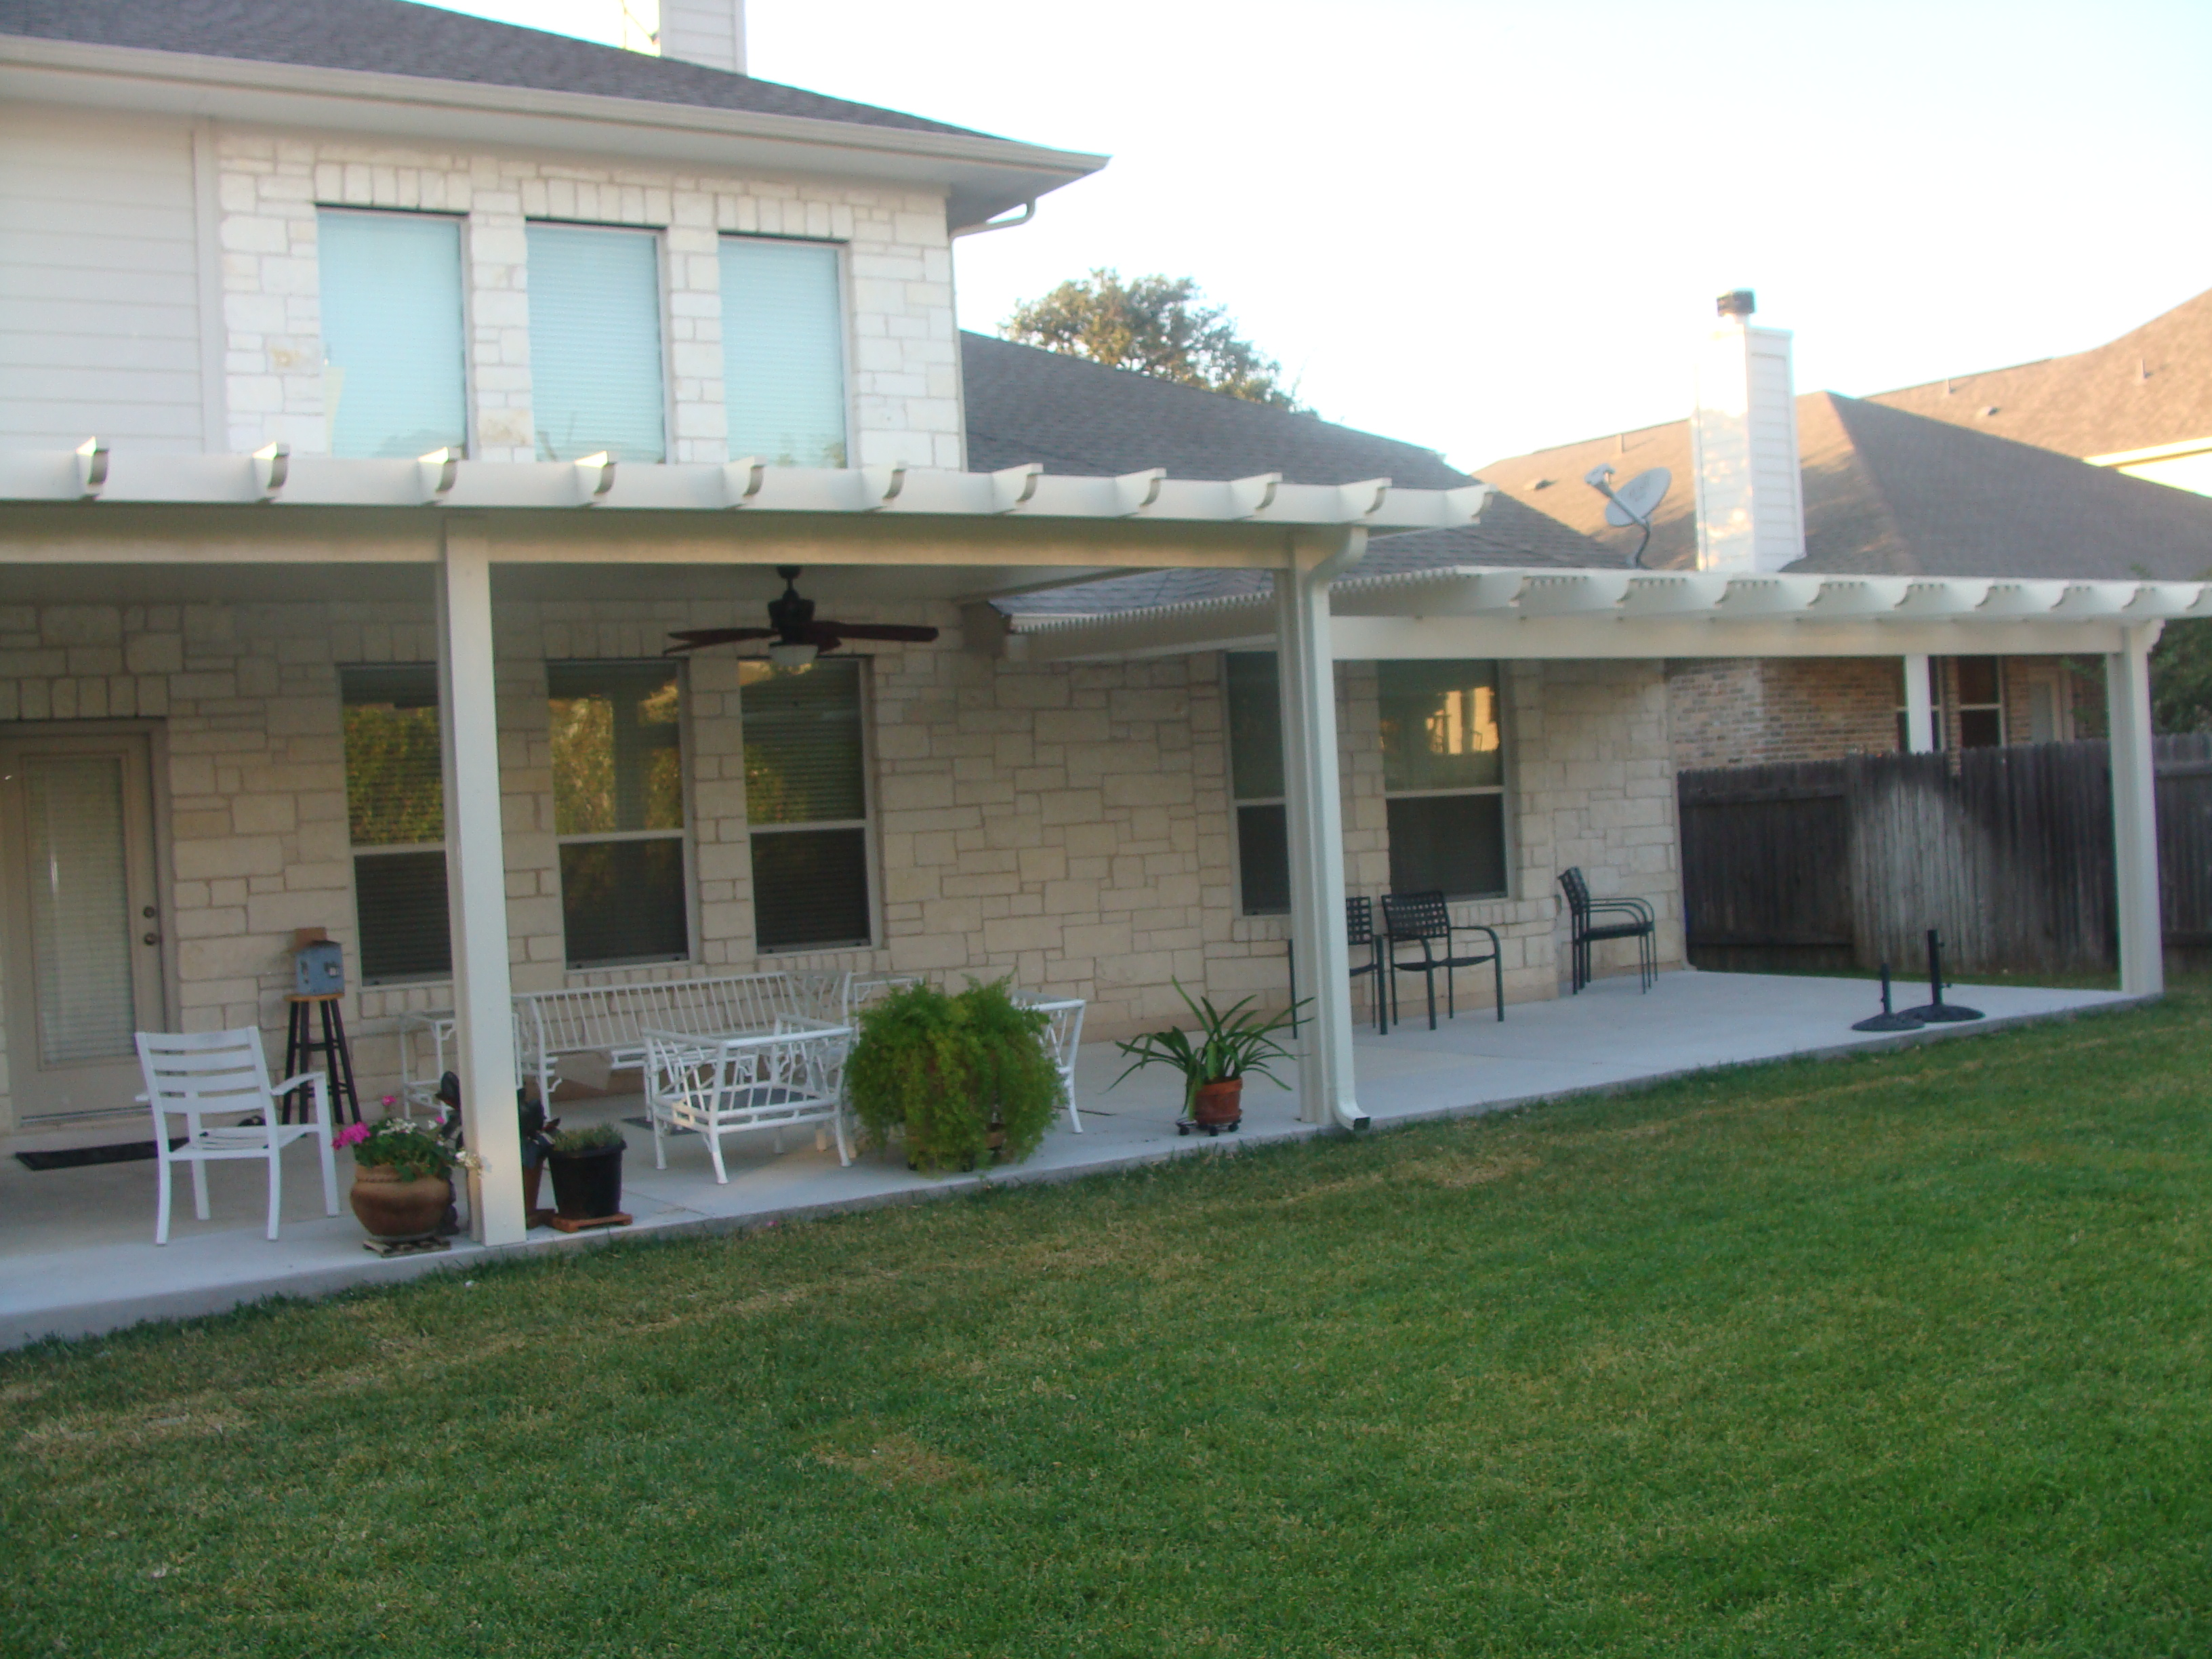 Lone Star Patio and Outdoor Living, LLC image 7